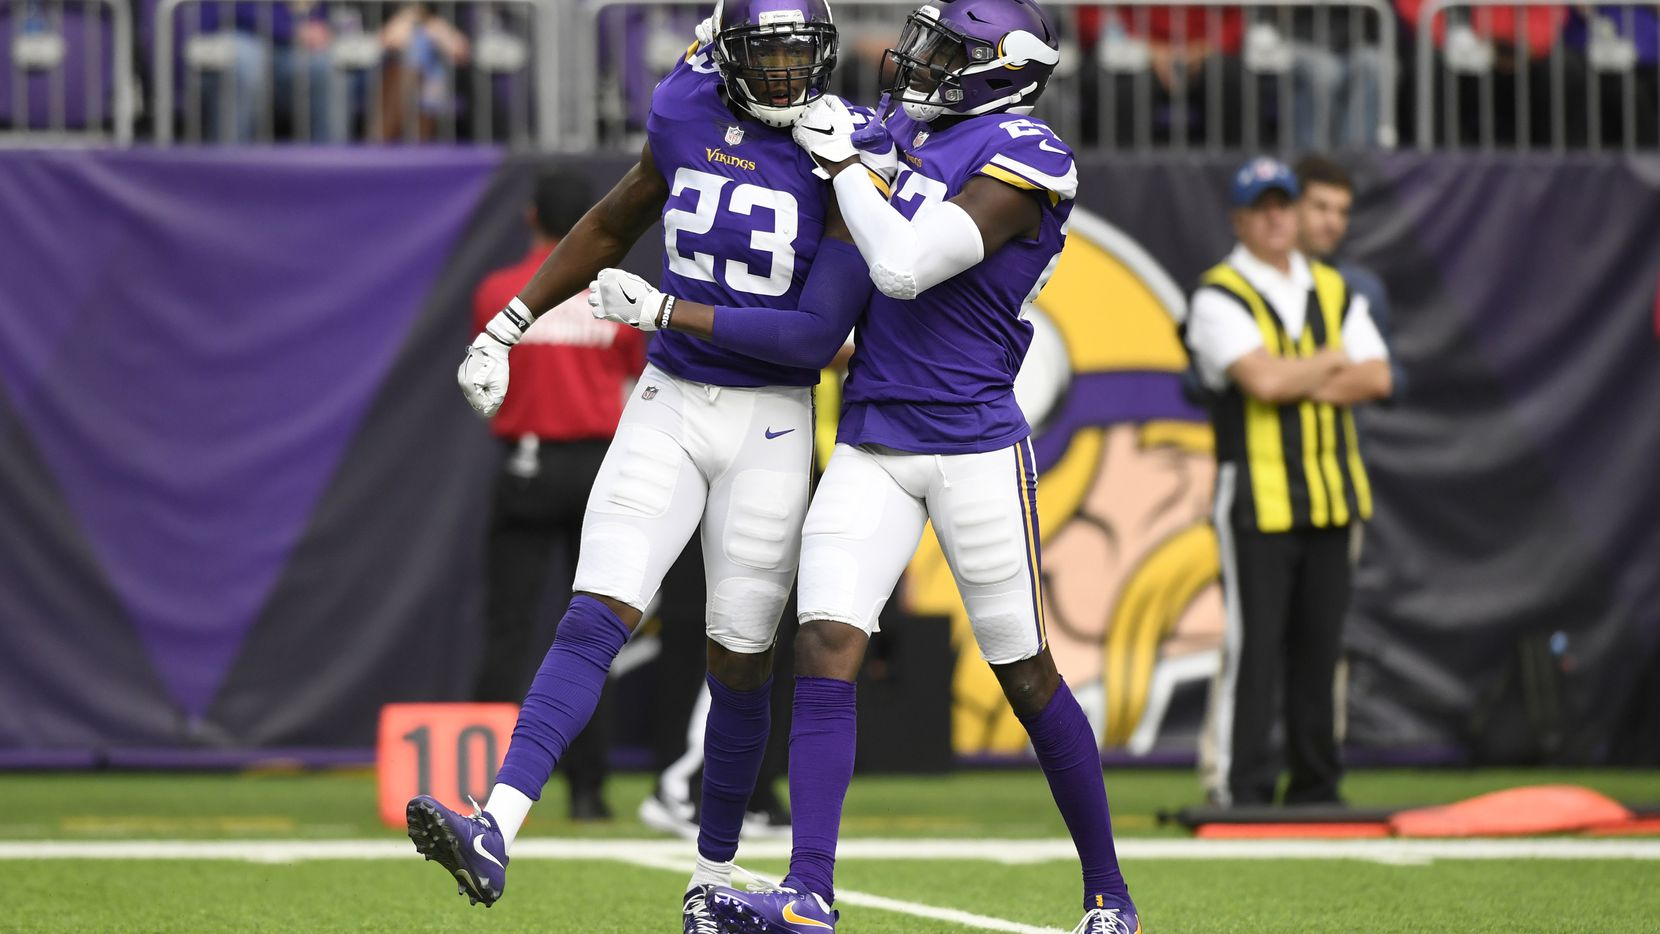 MINNEAPOLIS, MN - OCTOBER 14: George Iloka #23 of the Minnesota Vikings celebrates after tackling Brandon Williams #26 of the Arizona Cardinals in the third quarter of the game at U.S. Bank Stadium on October 14, 2018 in Minneapolis, Minnesota. (Photo by Hannah Foslien/Getty Images)